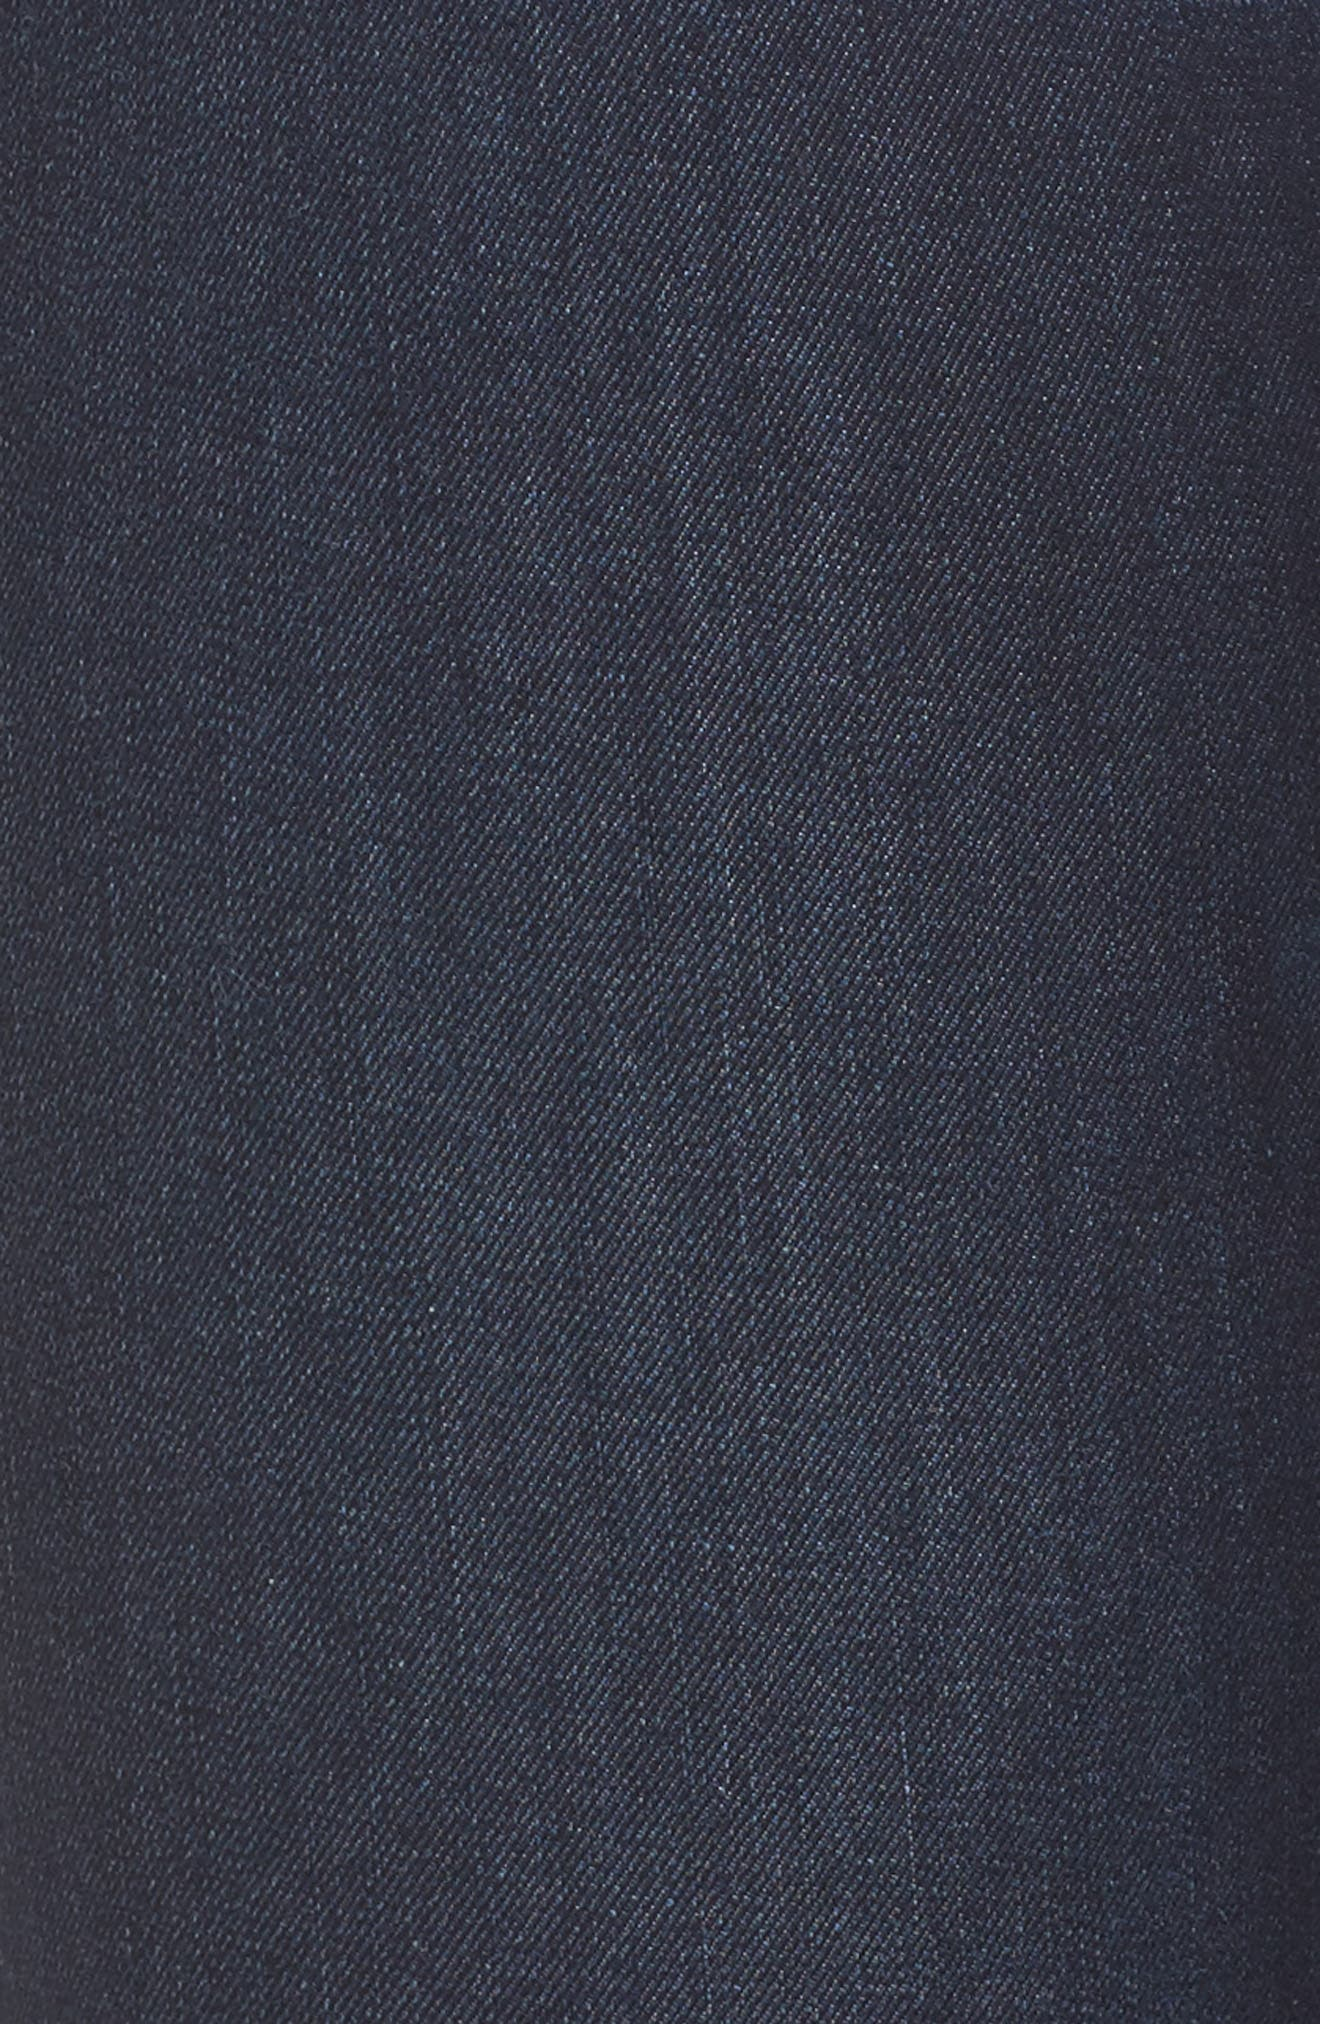 Ab-solution Luxe Touch Ankle Skinny Jeans,                             Alternate thumbnail 6, color,                             IN-INDIGO